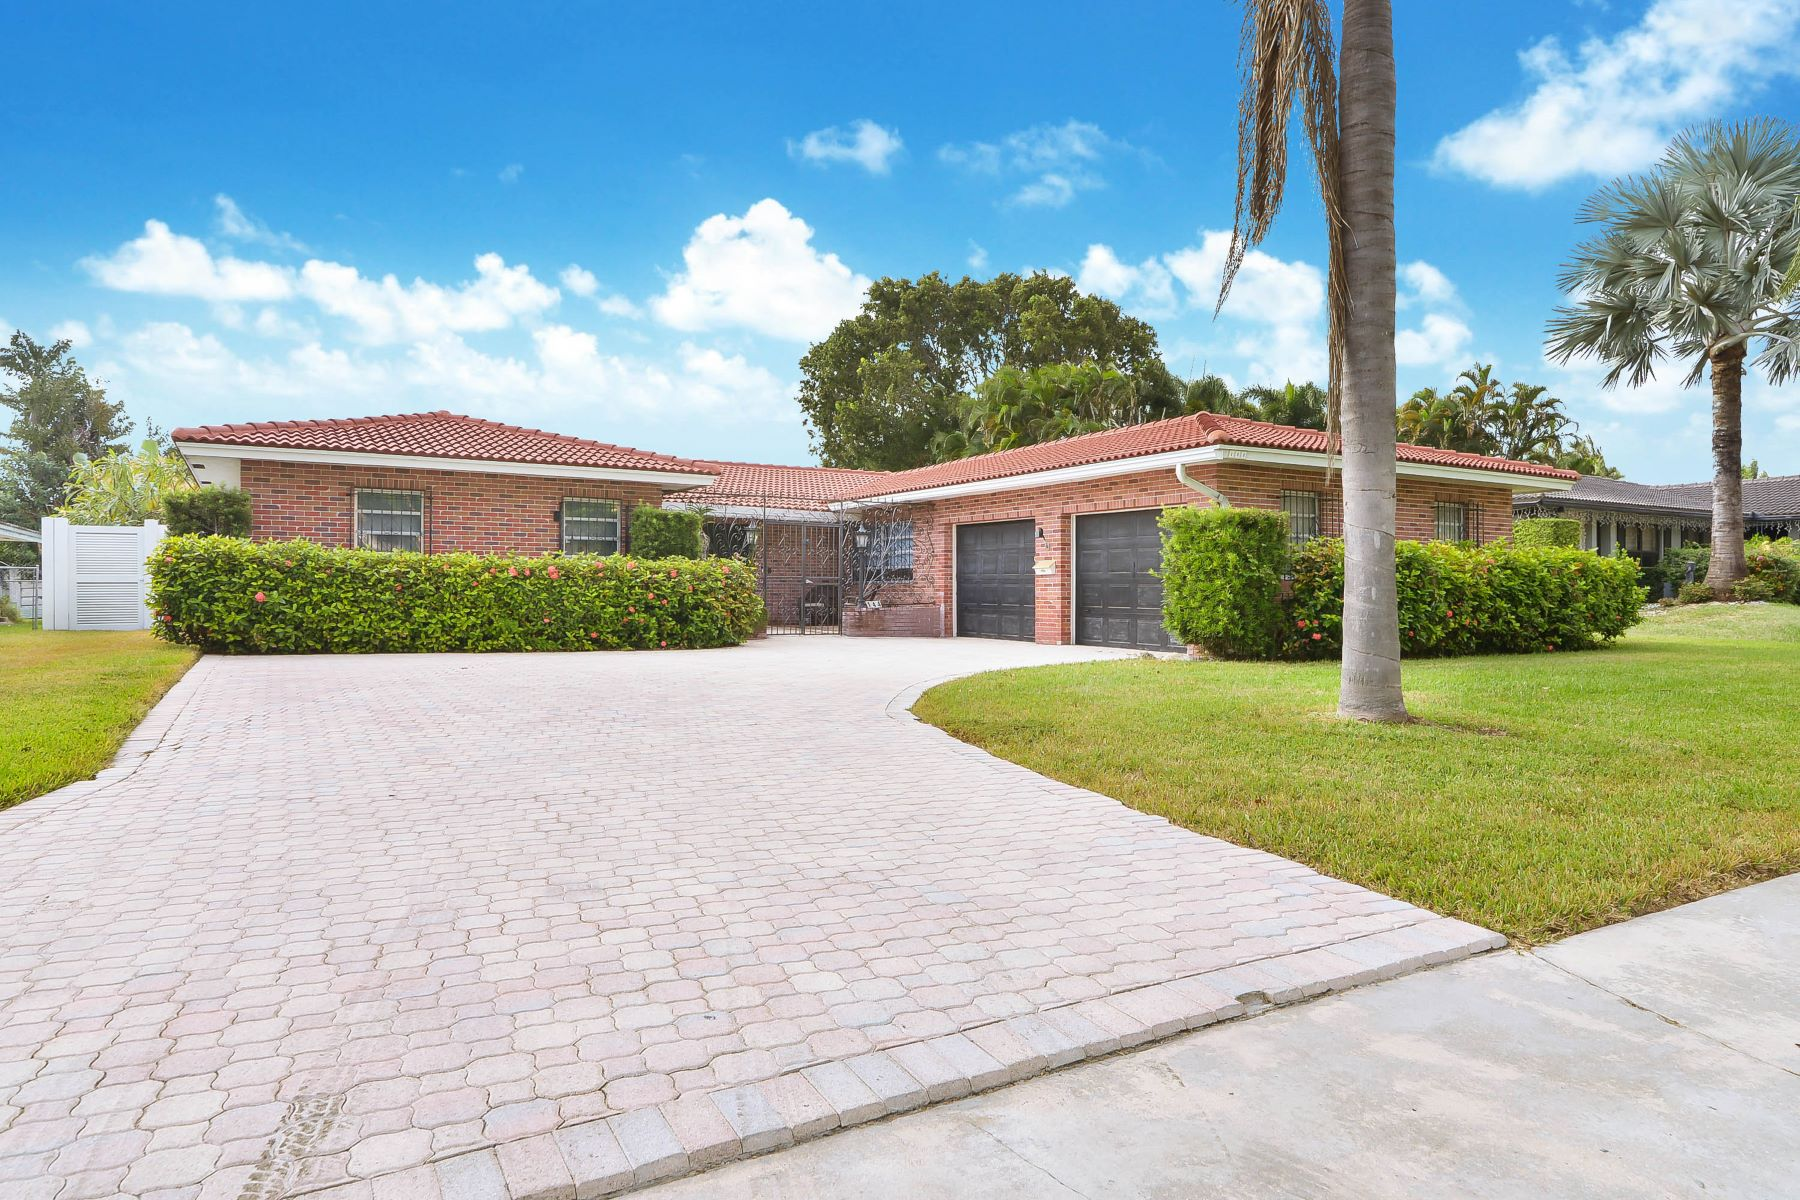 Single Family Homes for Sale at Dania Beach, Florida 33004 United States